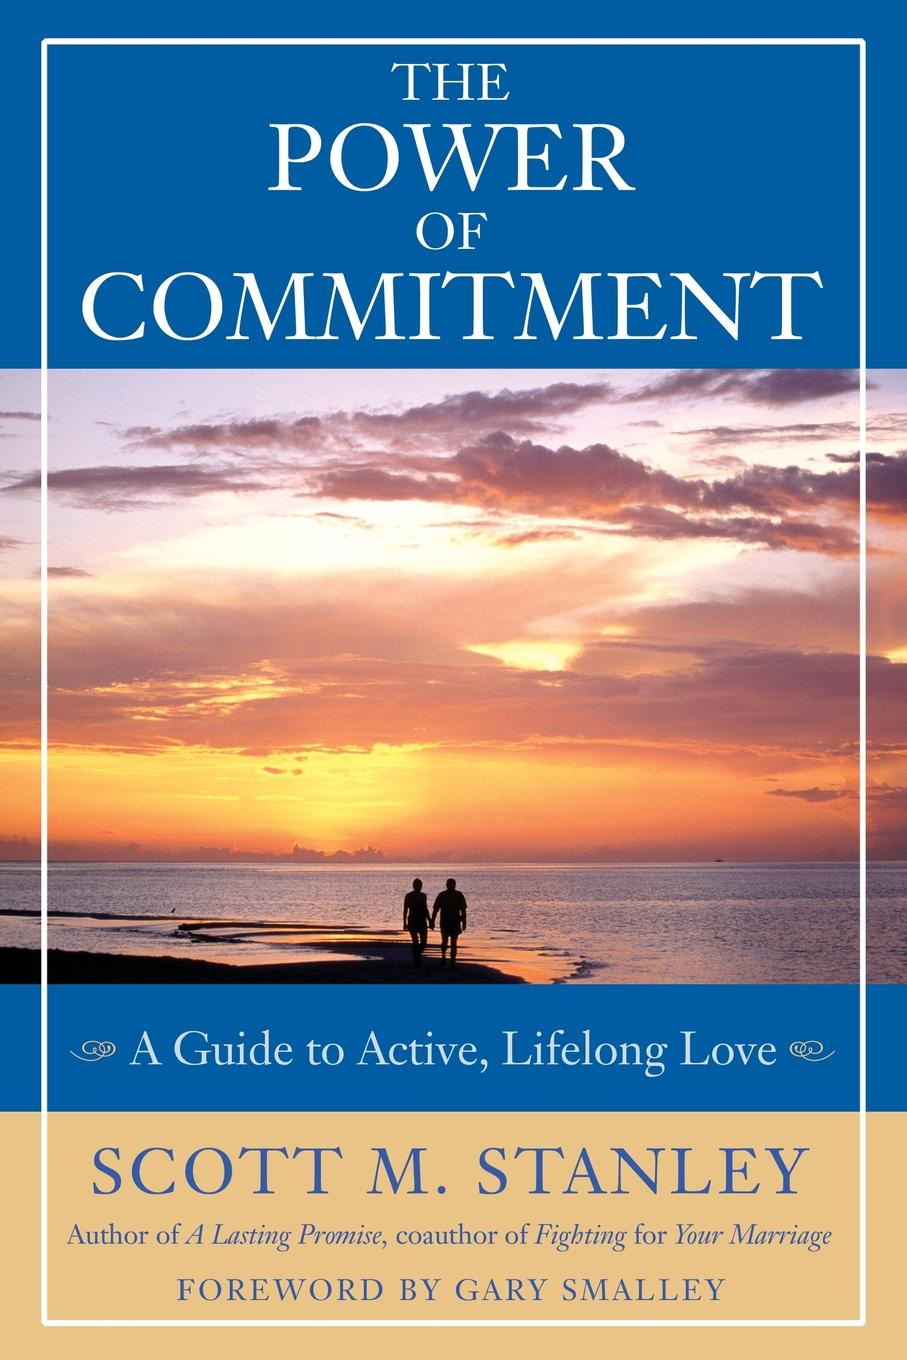 Фото - Scott M. Stanley, Gary Smalley The Power of Commitment. A Guide to Active, Lifelong Love marc kielburger take action a guide to active citizenship